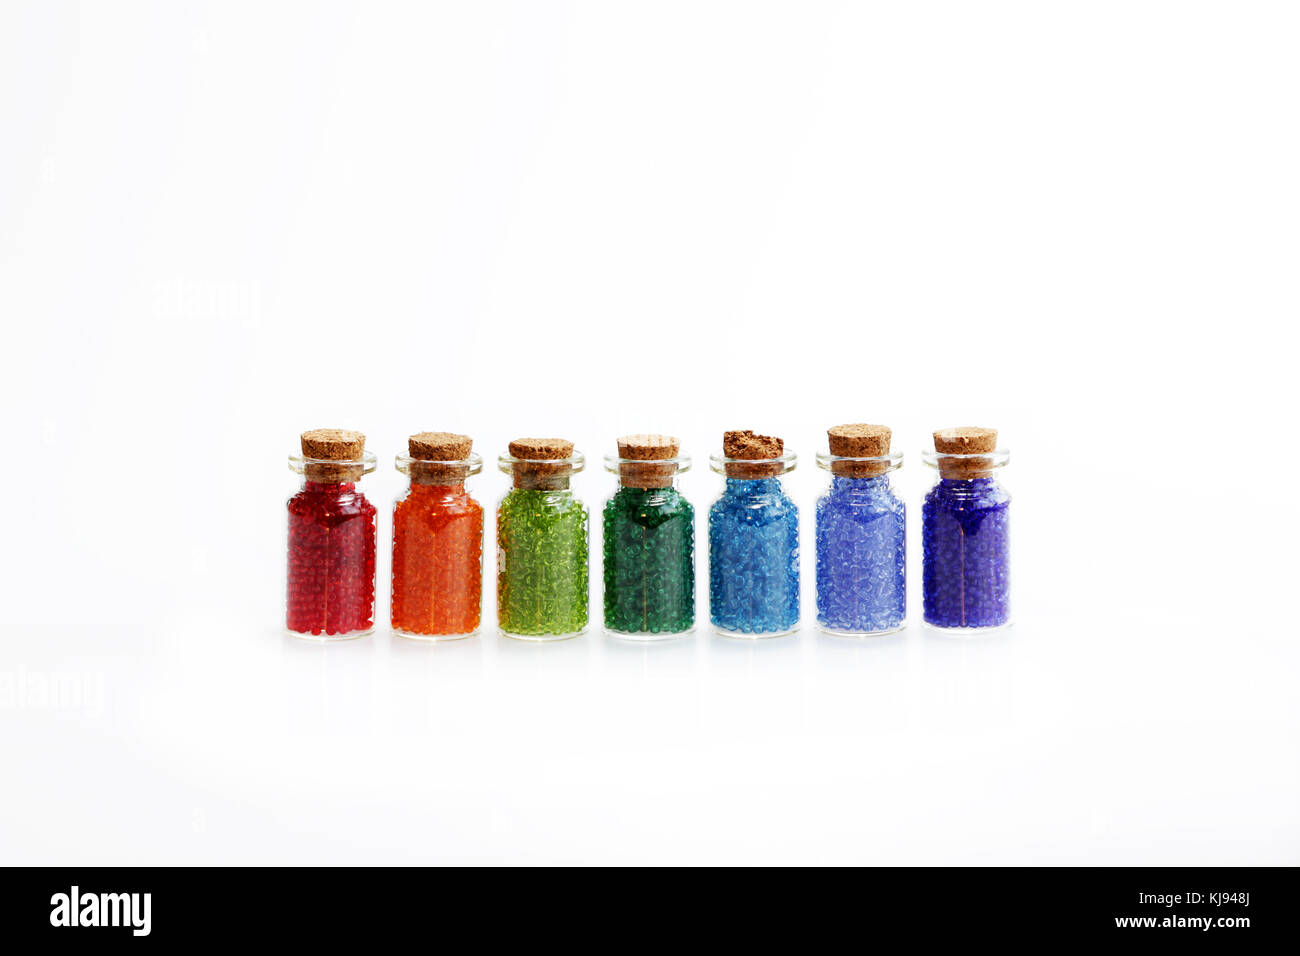 Seven tiny glass bottles with a cork stopper, filled with a rainbow colours of beads, on a white background Stock Photo